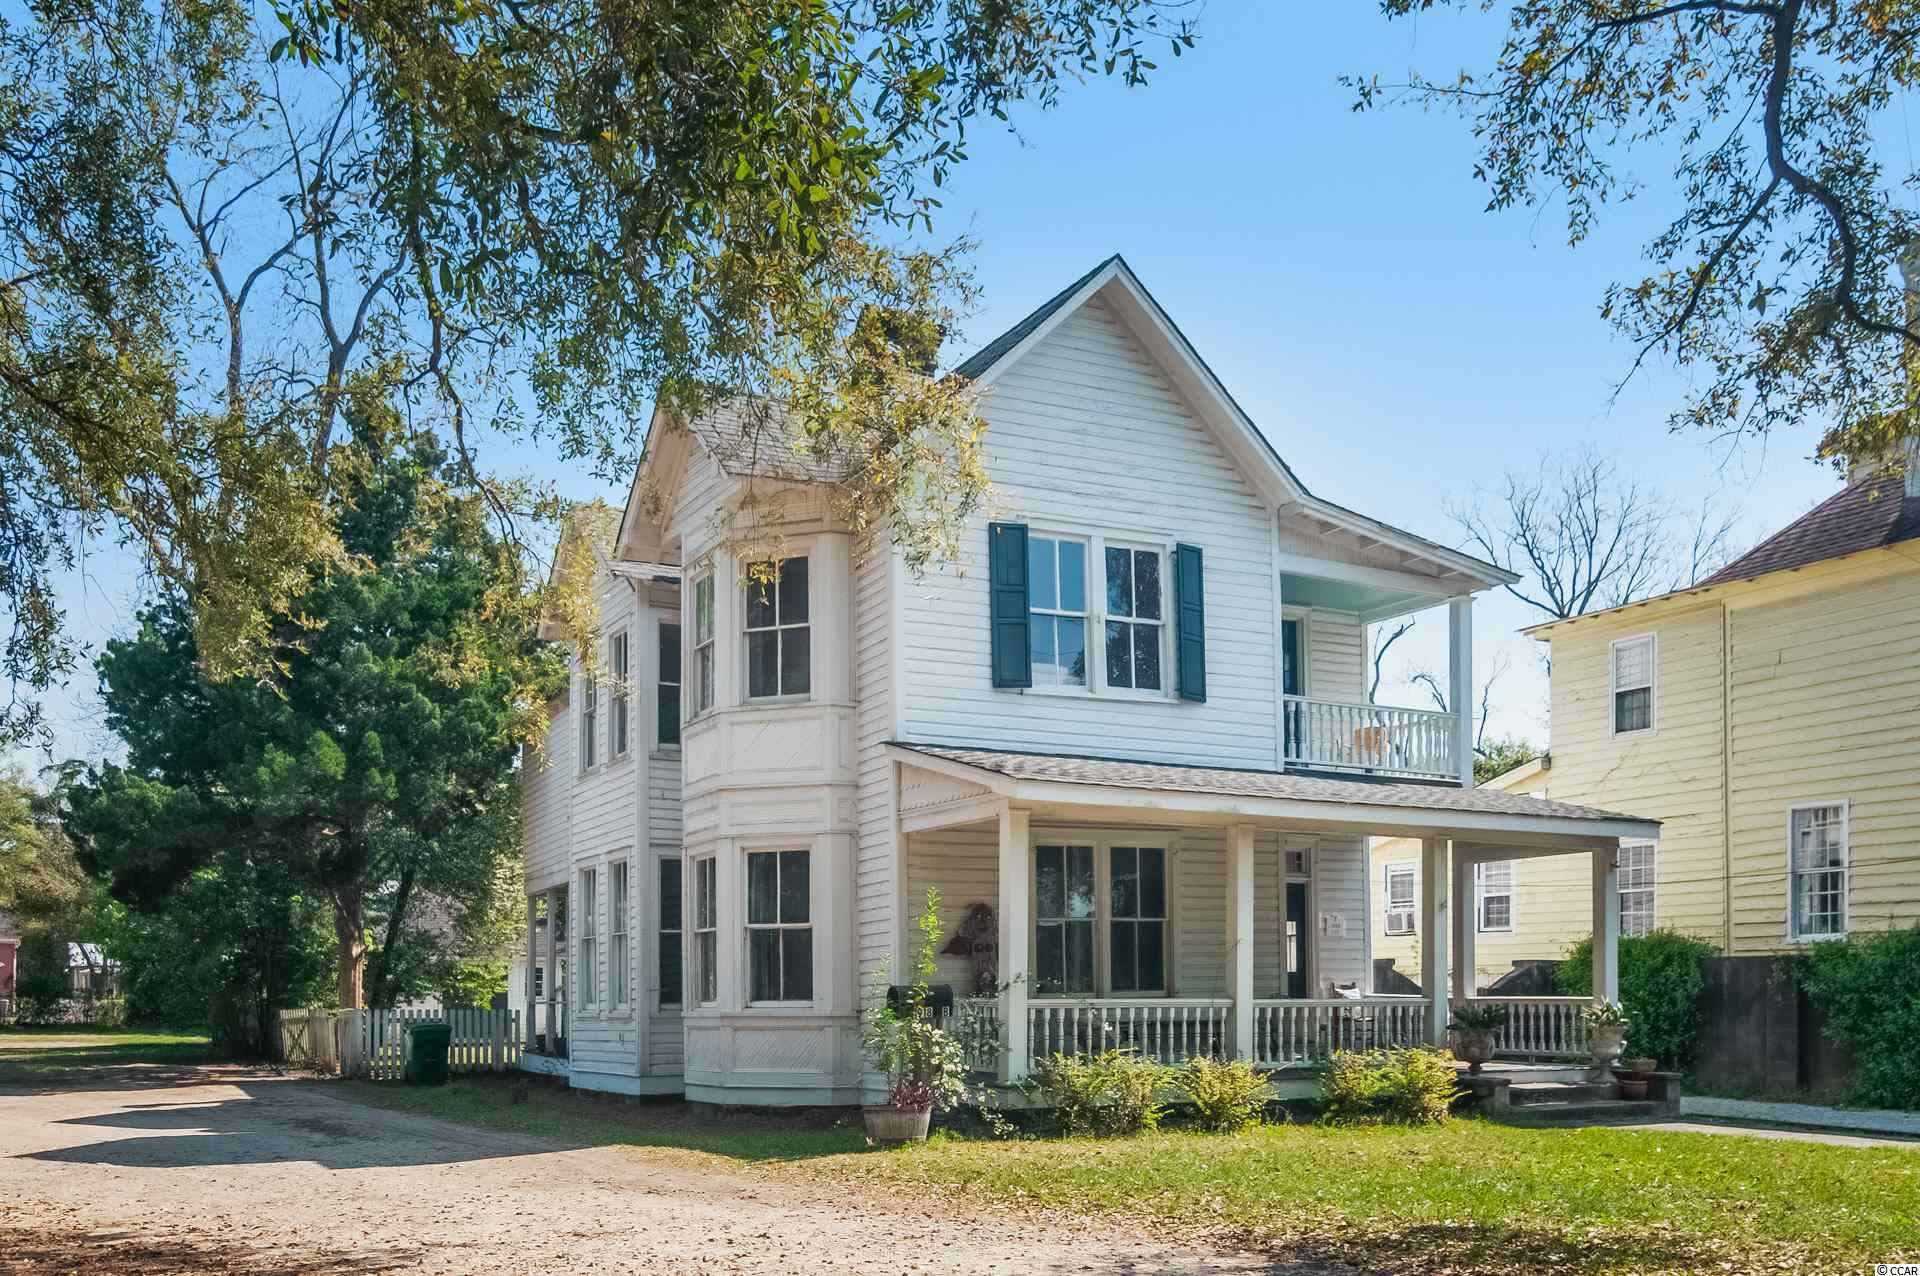 """Welcome to downtown Historic Georgetown SC.   This turn of the century home is located 2 blocks from the downtown shopping and dining district.    Upon entering the front door, you are greeted by a soaring two story entry hall.  Although the home is currently used as a rental, the rooms traditionally are a formal living room, formal dining, full bath, and great room on the main floor. A rear porch is meant to be screened,  Take not of period bay windows and fireplaces and the large amount of light.   Upstairs you will find two bedrooms that share a hall bath, a master suite .  Keep in mind that the second floor is also being used as an owners apartment.  Bay windows that mimic the first floor are also on the second. You will also find a charming """"dust porch"""". A common outdoor structure is the current laundry, but would make a fantastic outdoor kitchen and entertaining space.   At the rear of the property you will find a cottage that was relocated to the site from the neighboring property.   This house features a living room and kitchenette, one bedroom, and 1 bath.  This would be a lovely cottage to use as a short or longer term rental. Discover this classic home in downtown Georgetown!"""